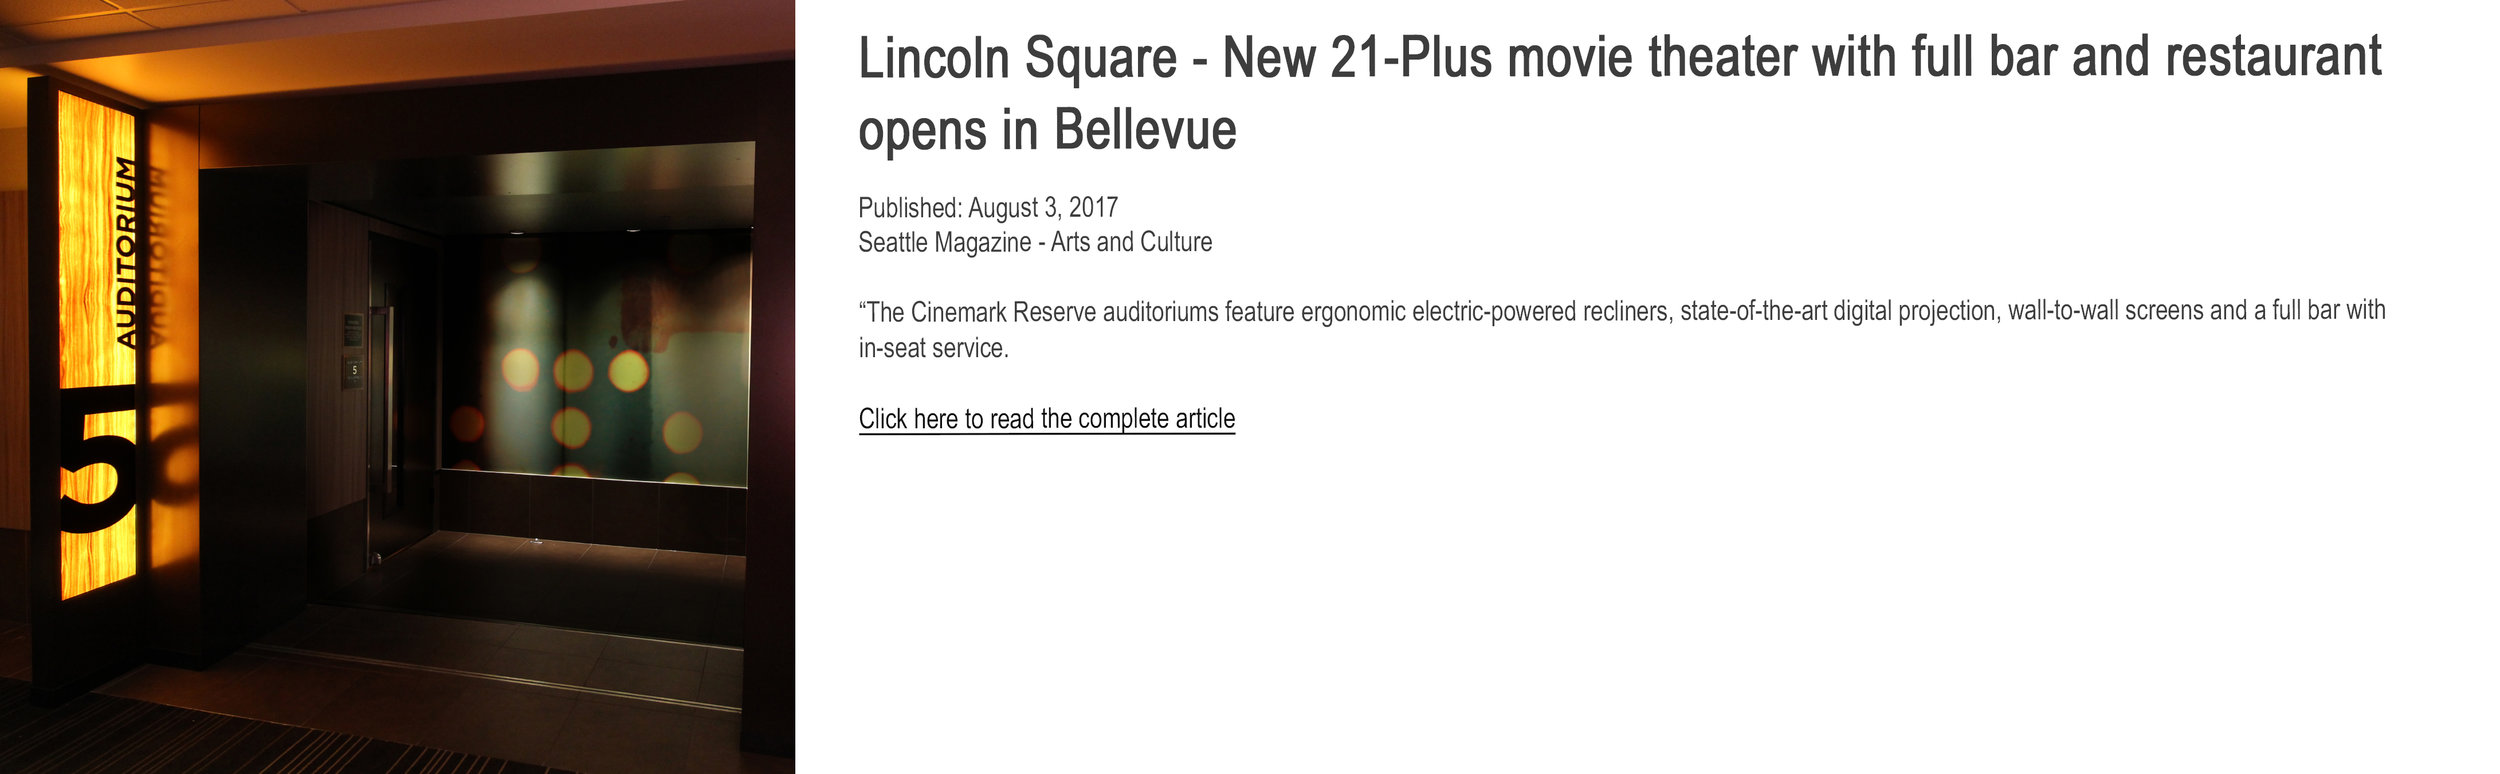 Lincoln Square - Seattle Magazine.jpg